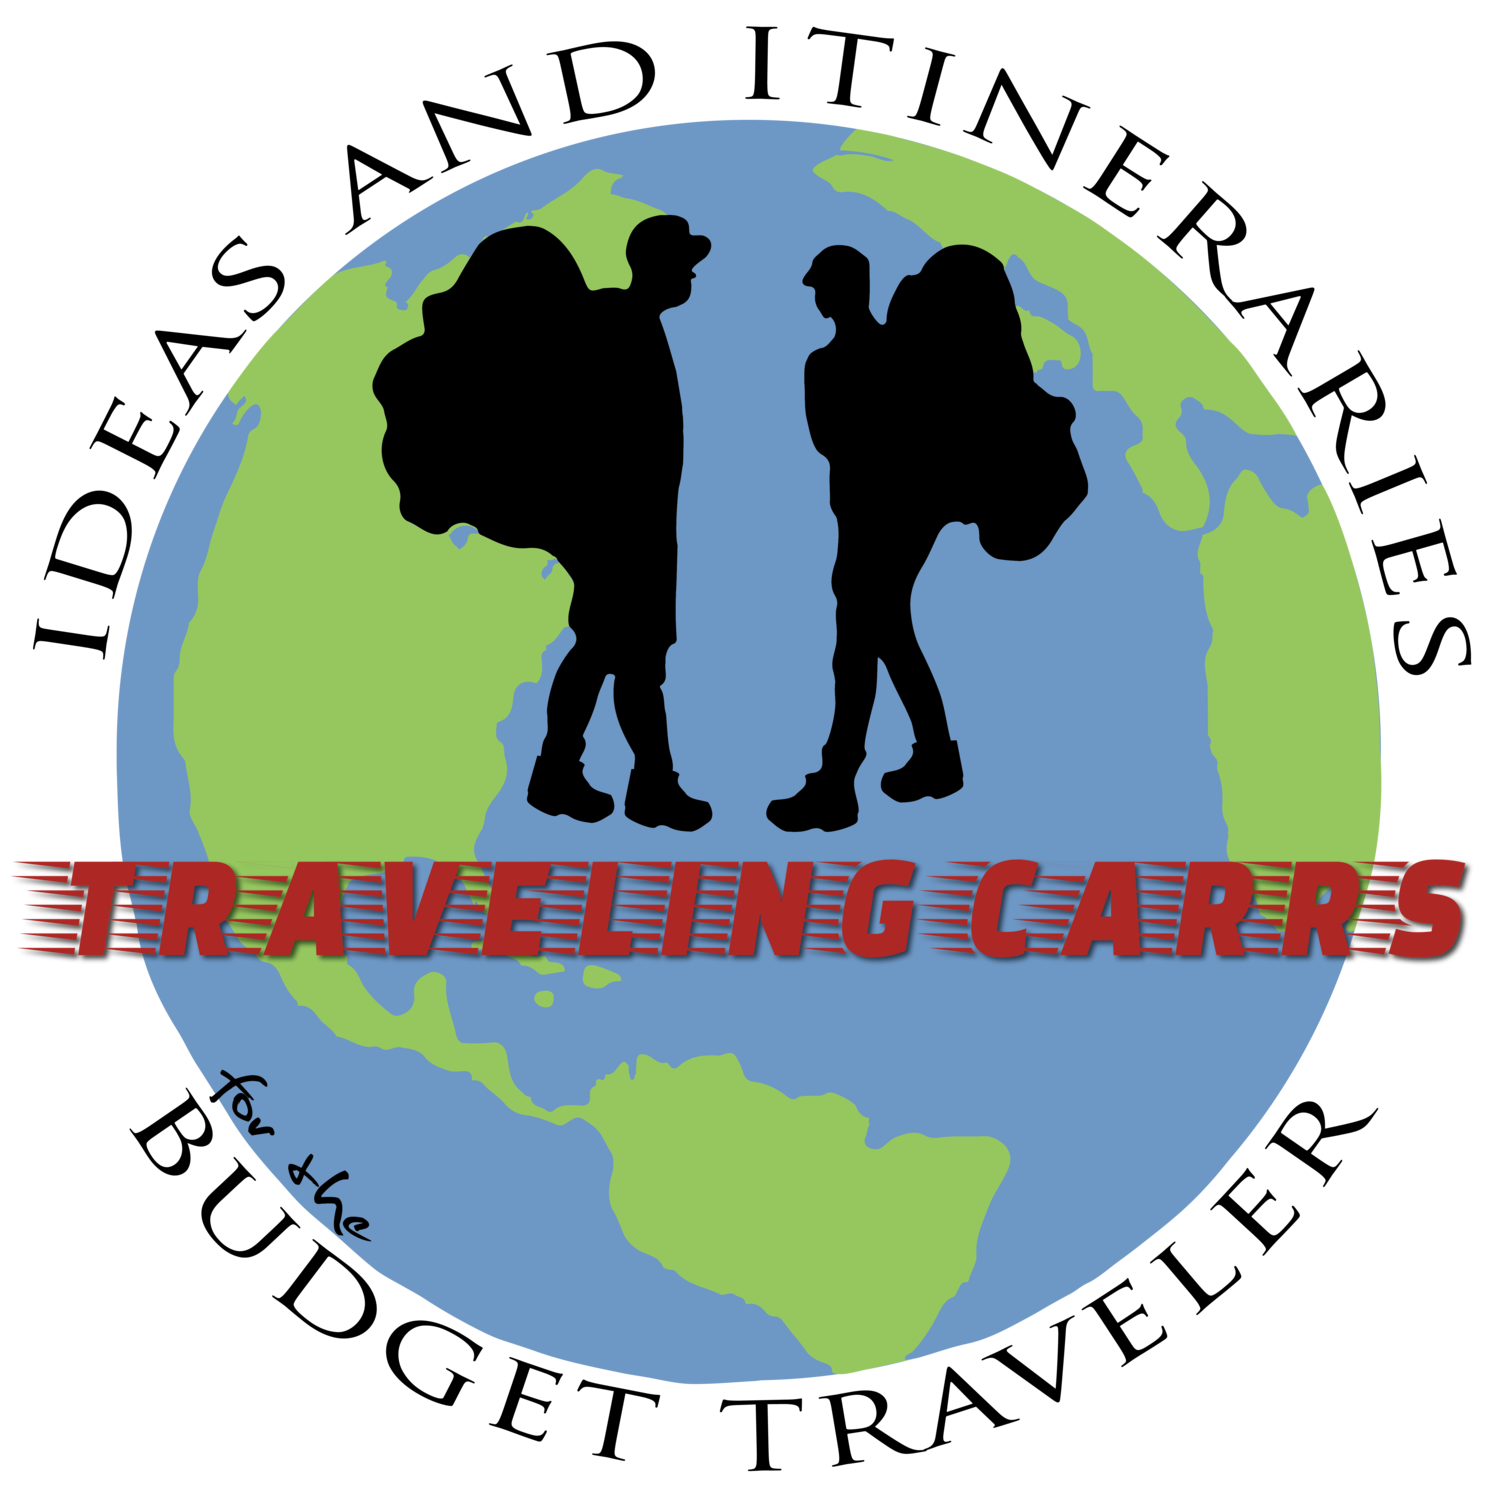 North america traveling carrs. Mount rushmore clipart national parks